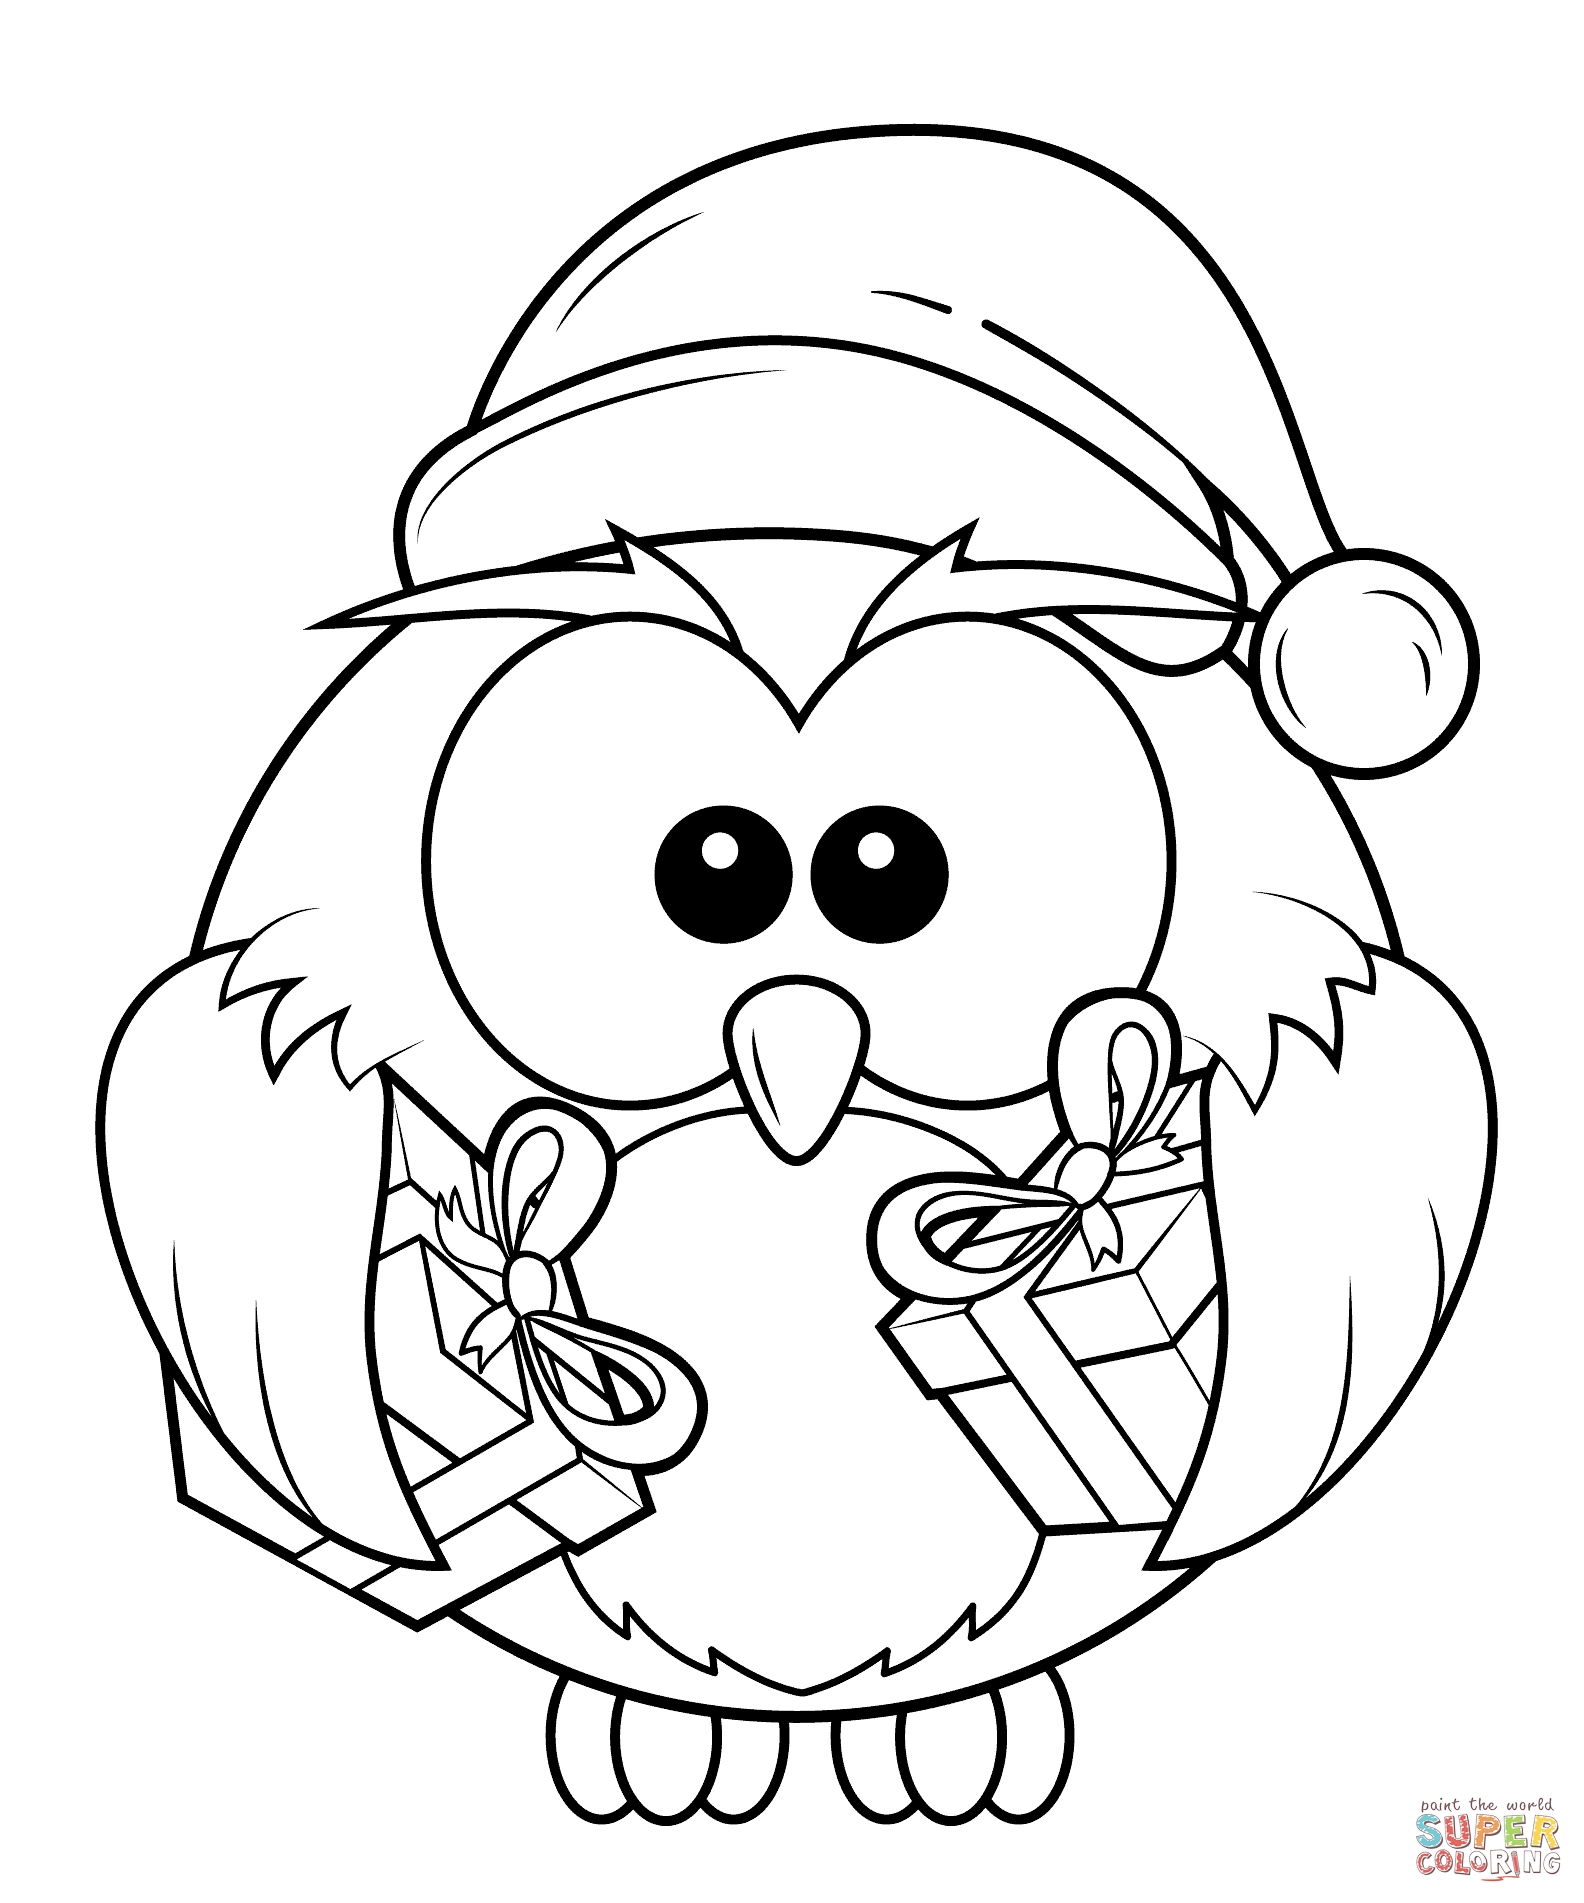 Owl Coloring Pages at GetDrawings.com | Free for personal ...